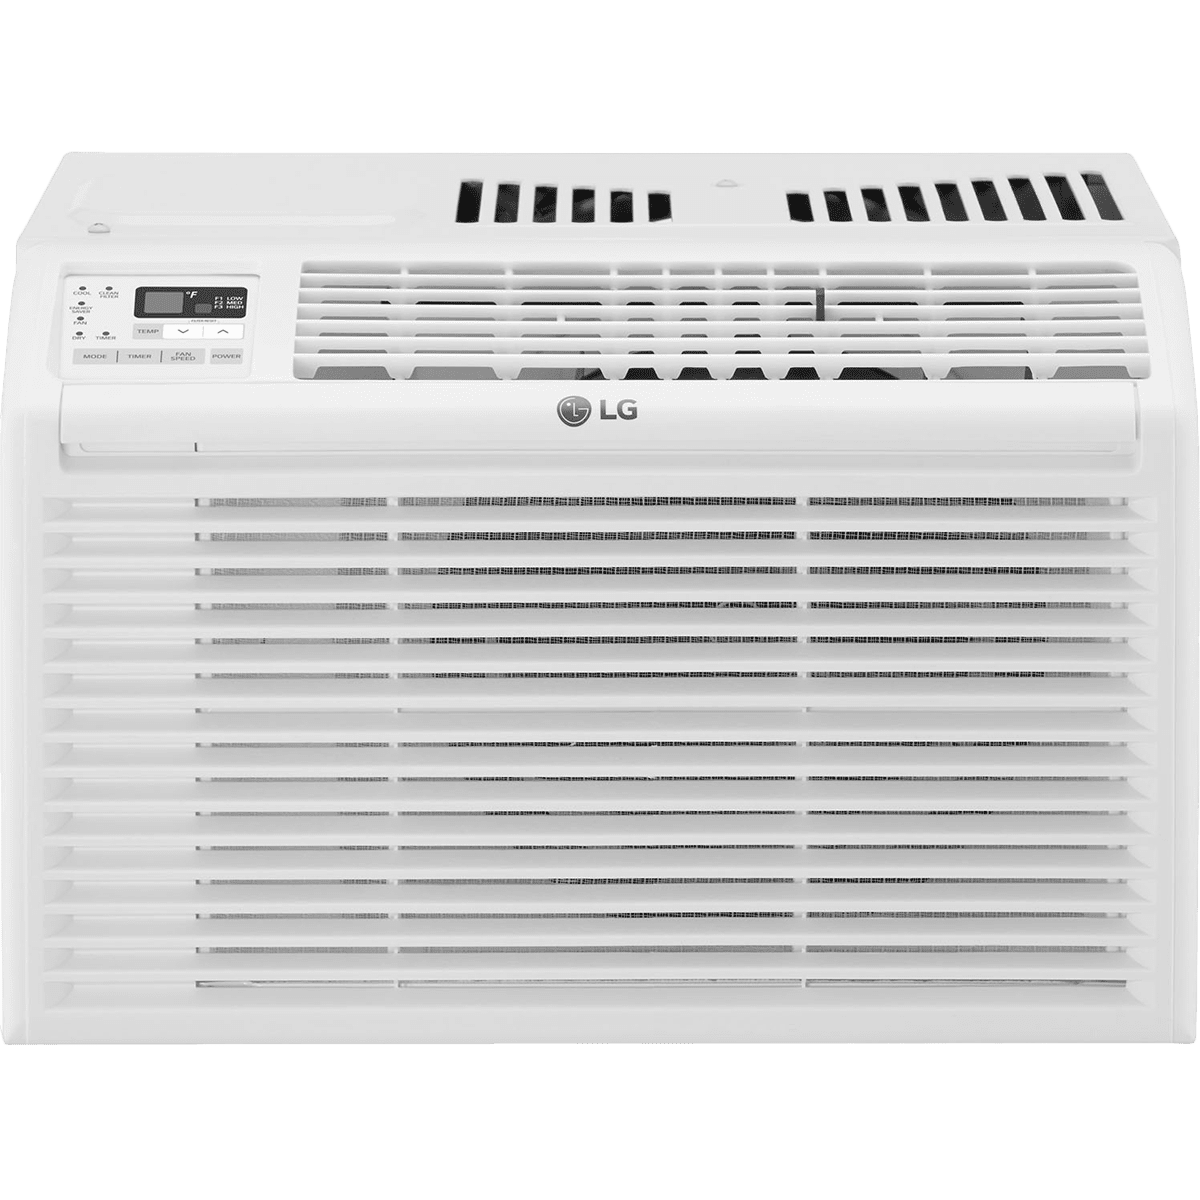 Danby 6000 Btu Window Air Conditioner Manual - Air